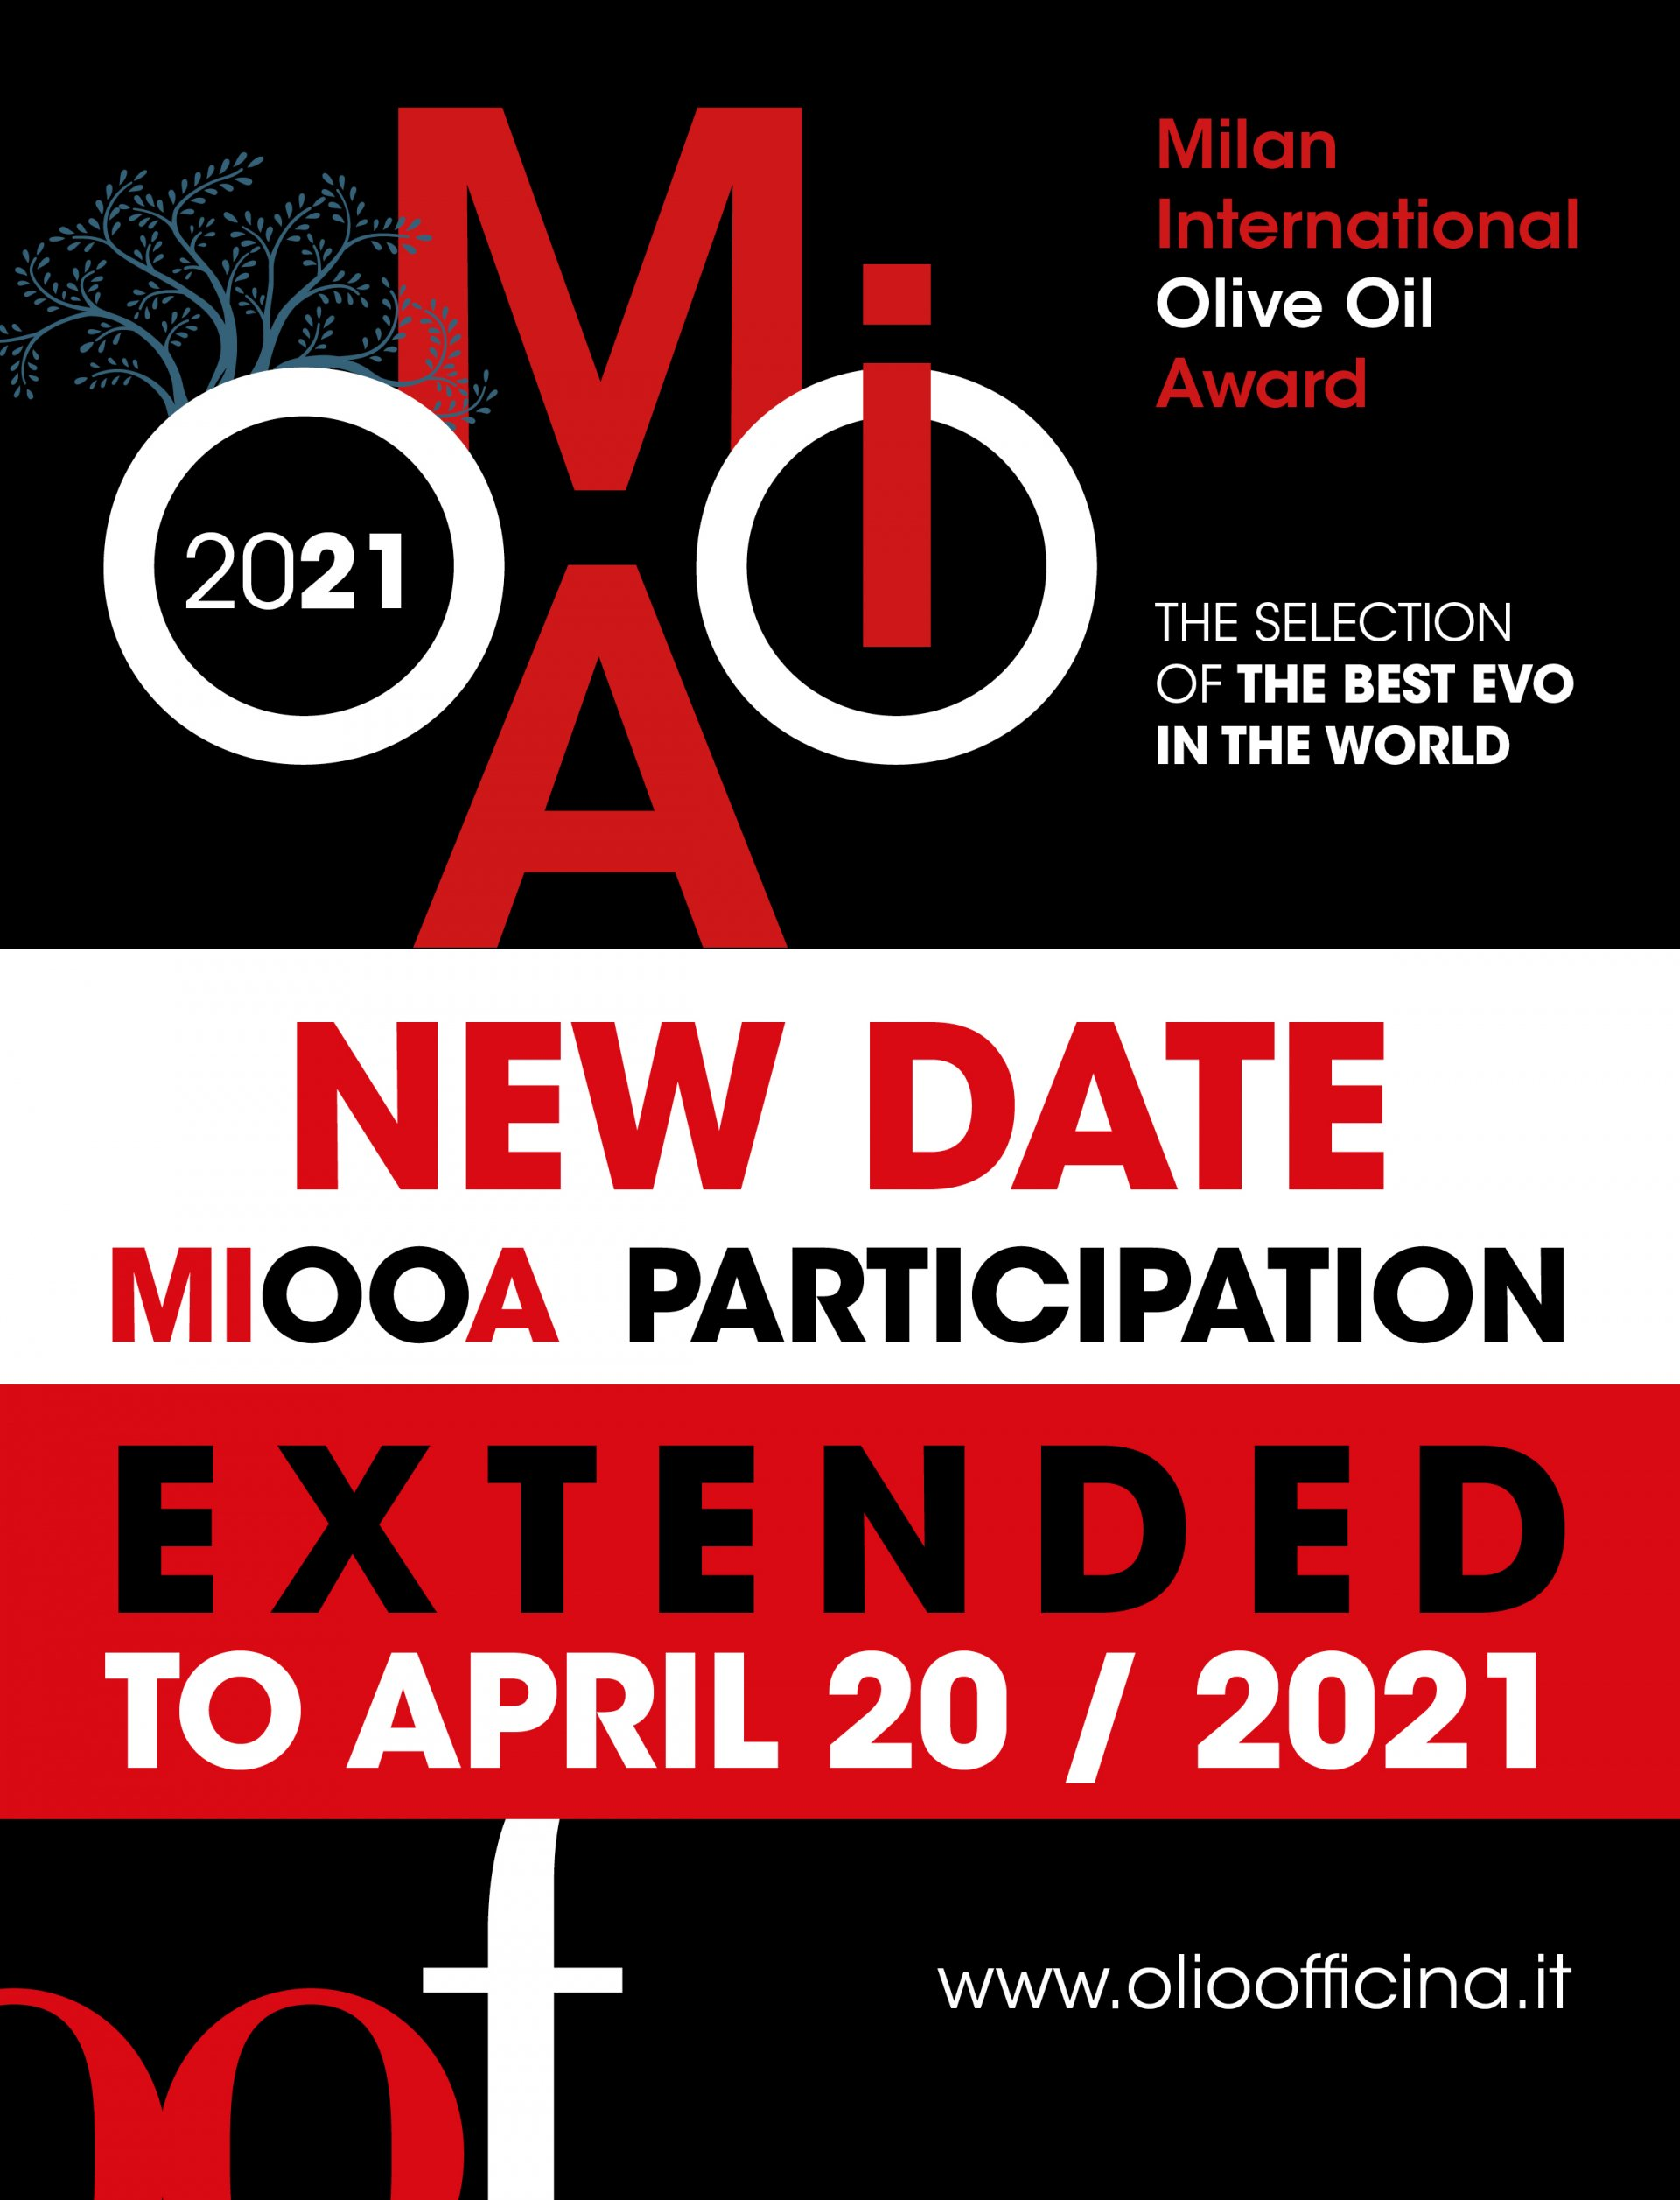 There is time until April 20 to send the olive oils for the Milan International Olive Oil Award competition